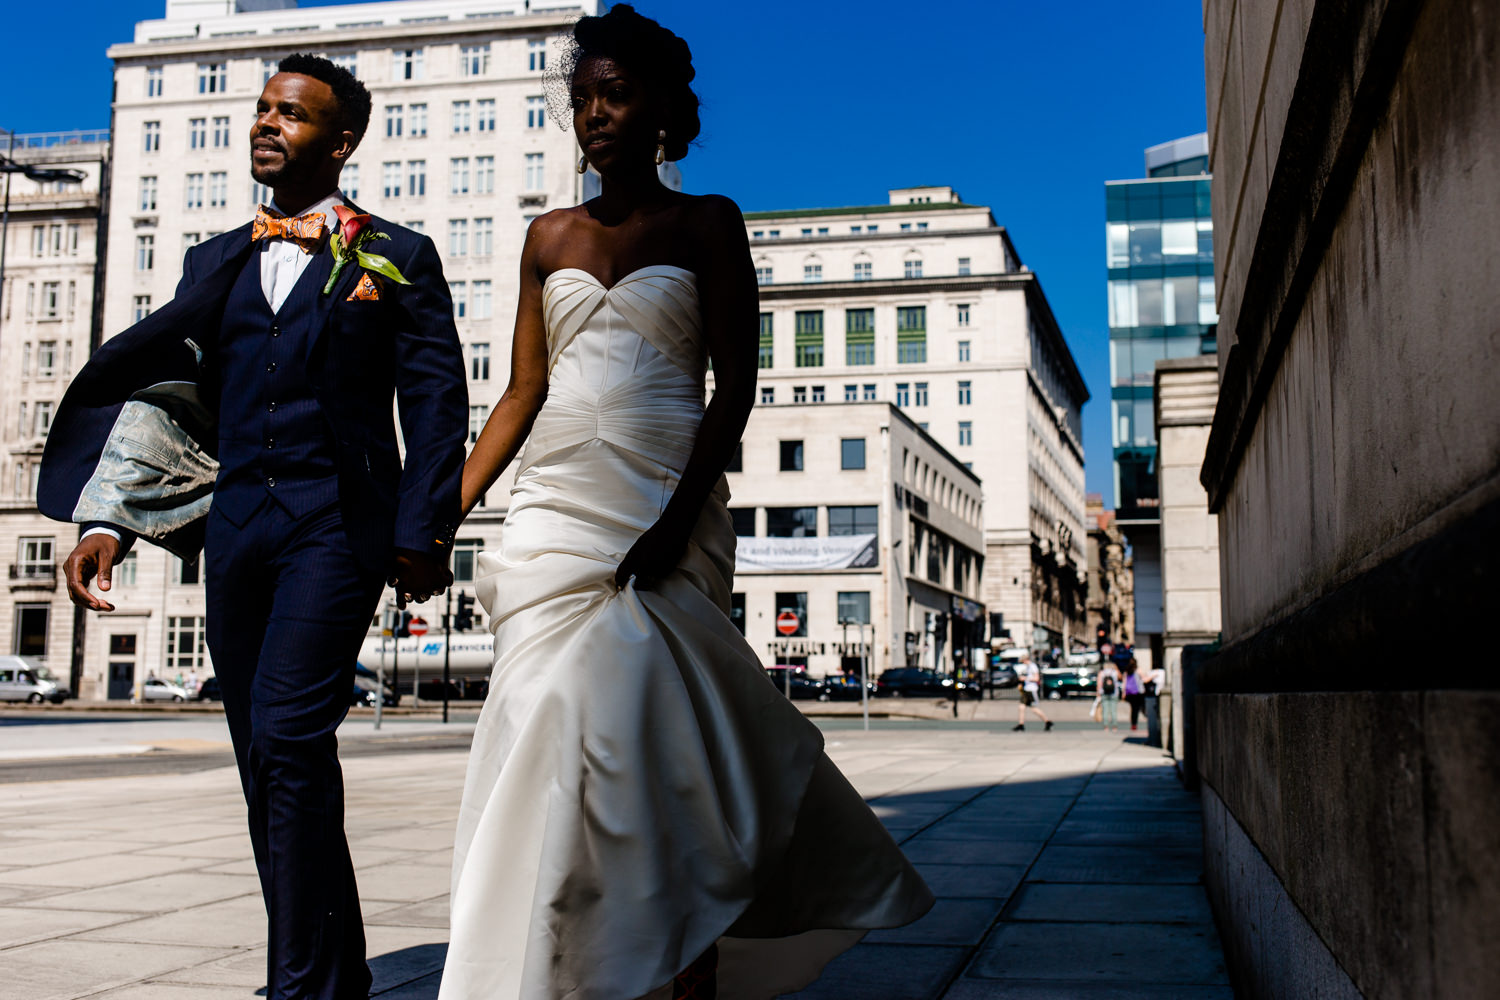 Bride and groom stroll the streets of Liverpool on their wedding day.